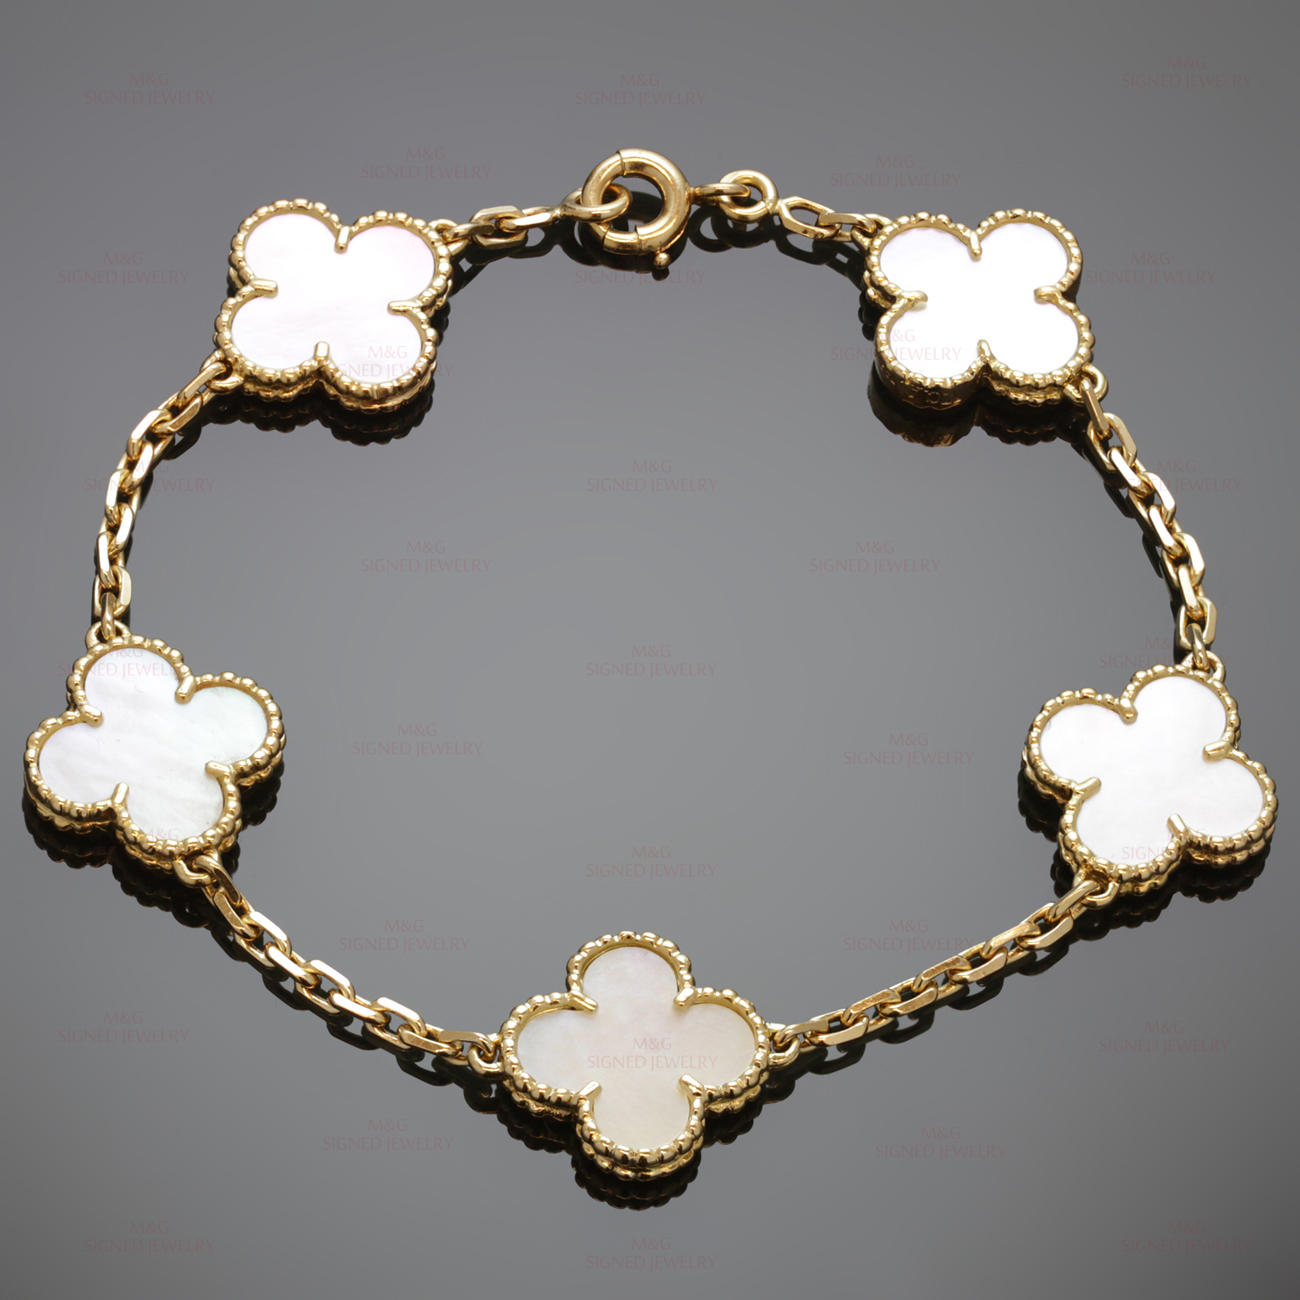 arpels motifs jewelry van worn vintage bracelet view alhambra cleef en collections eu